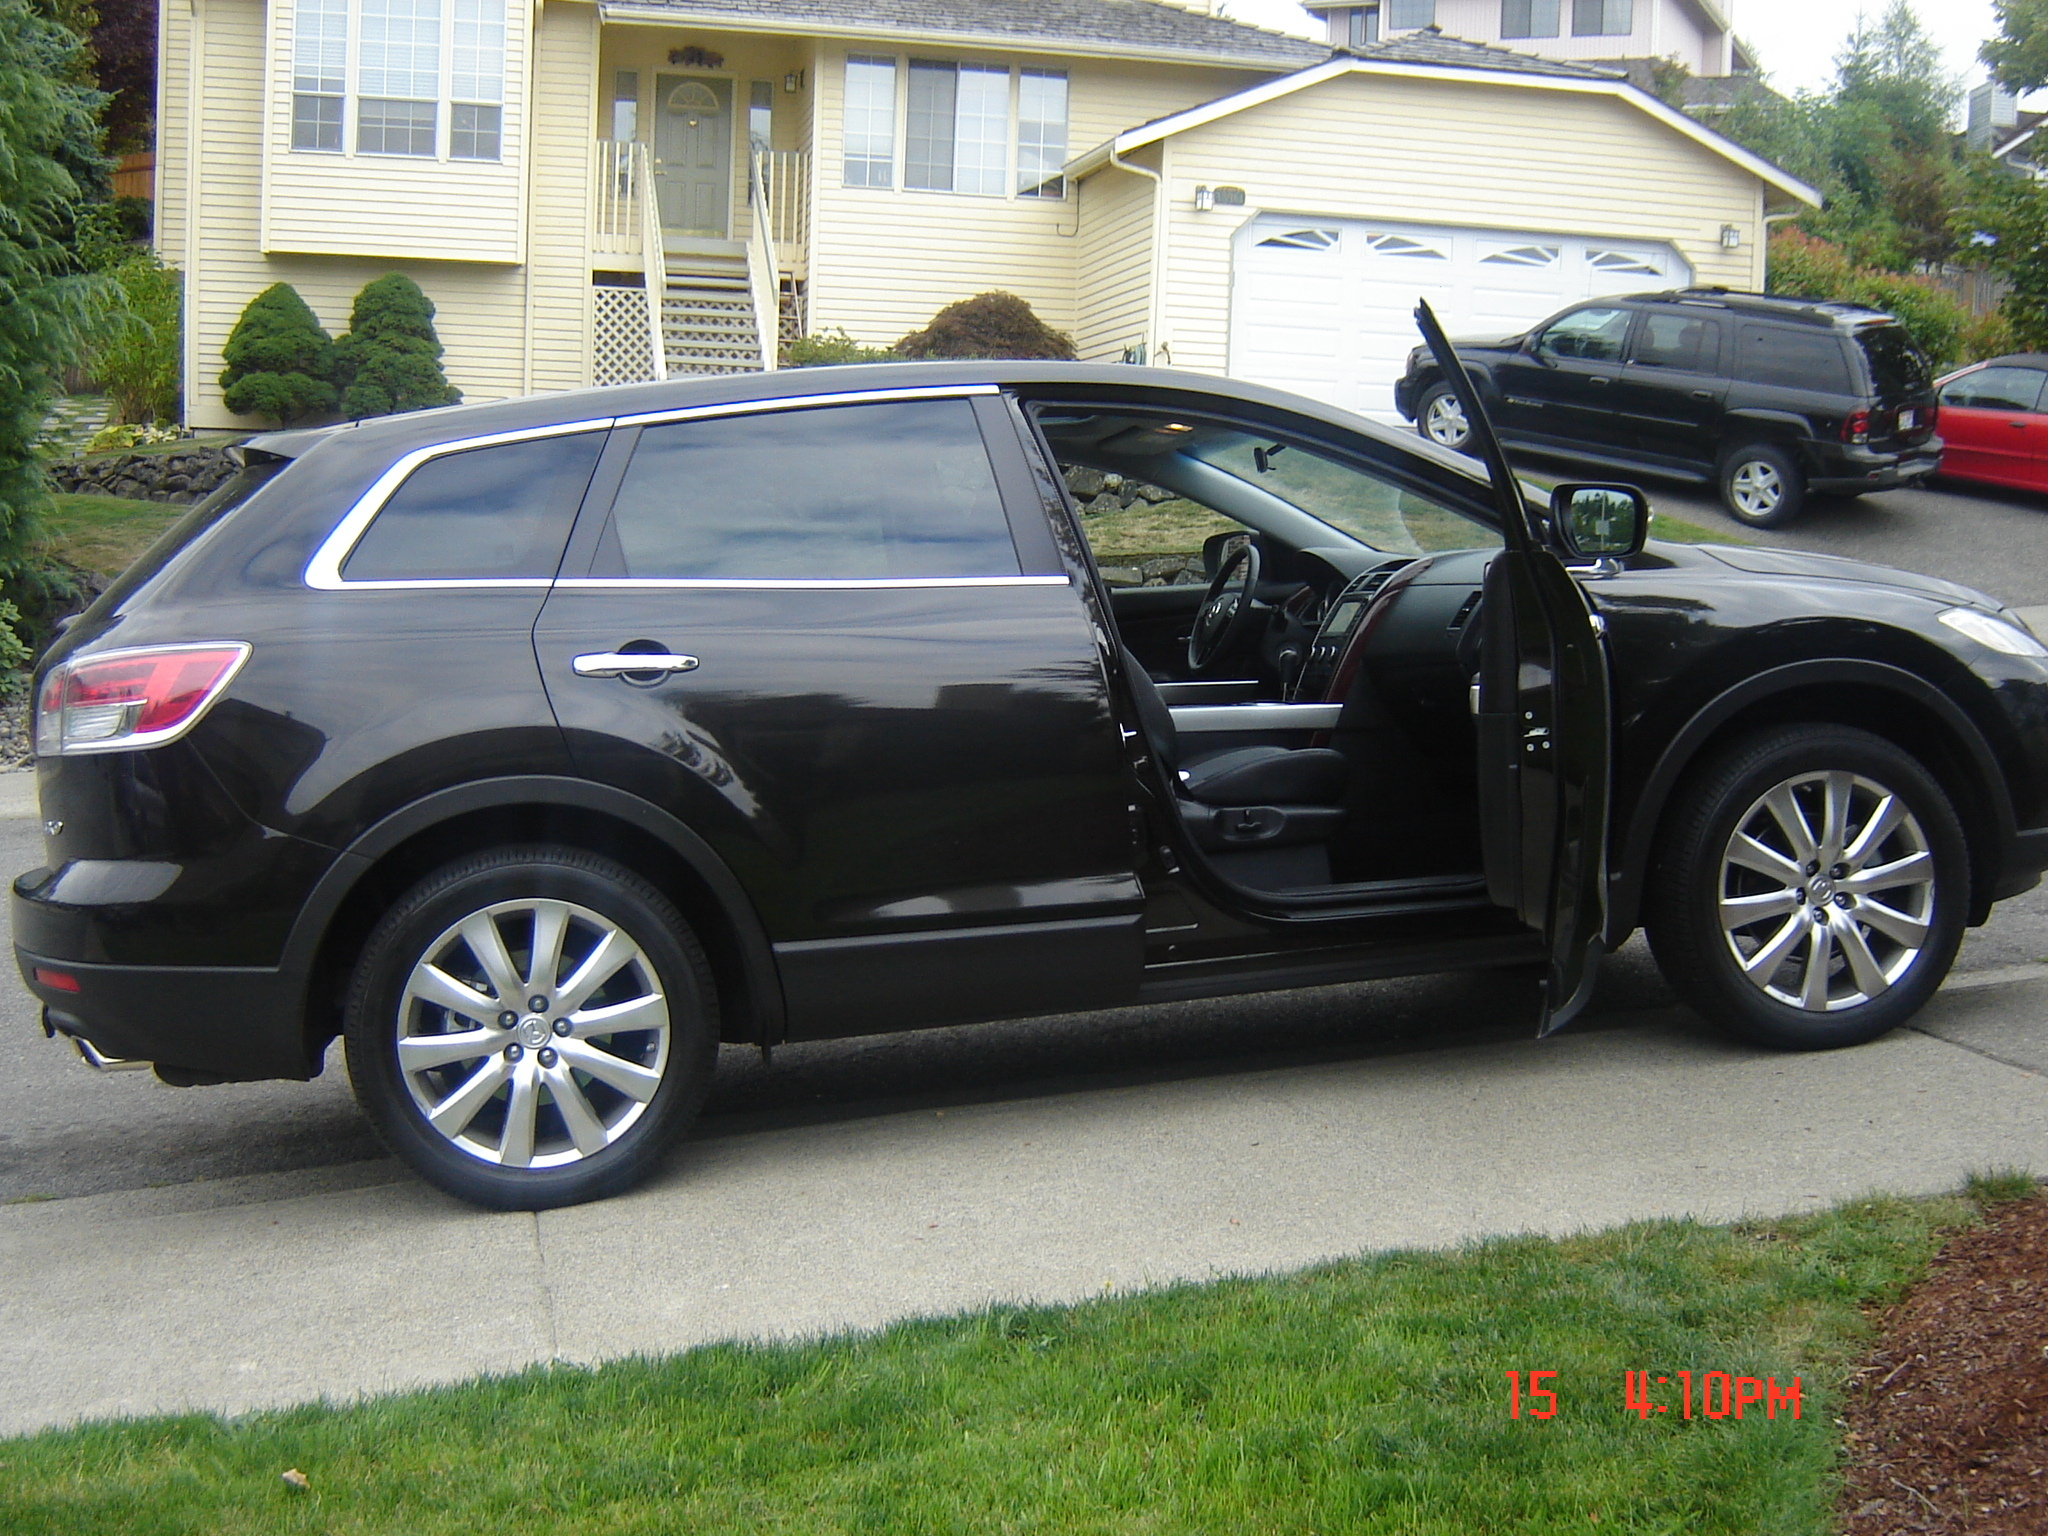 onlyohio 2007 mazda cx 9 specs photos modification info at cardomain. Black Bedroom Furniture Sets. Home Design Ideas